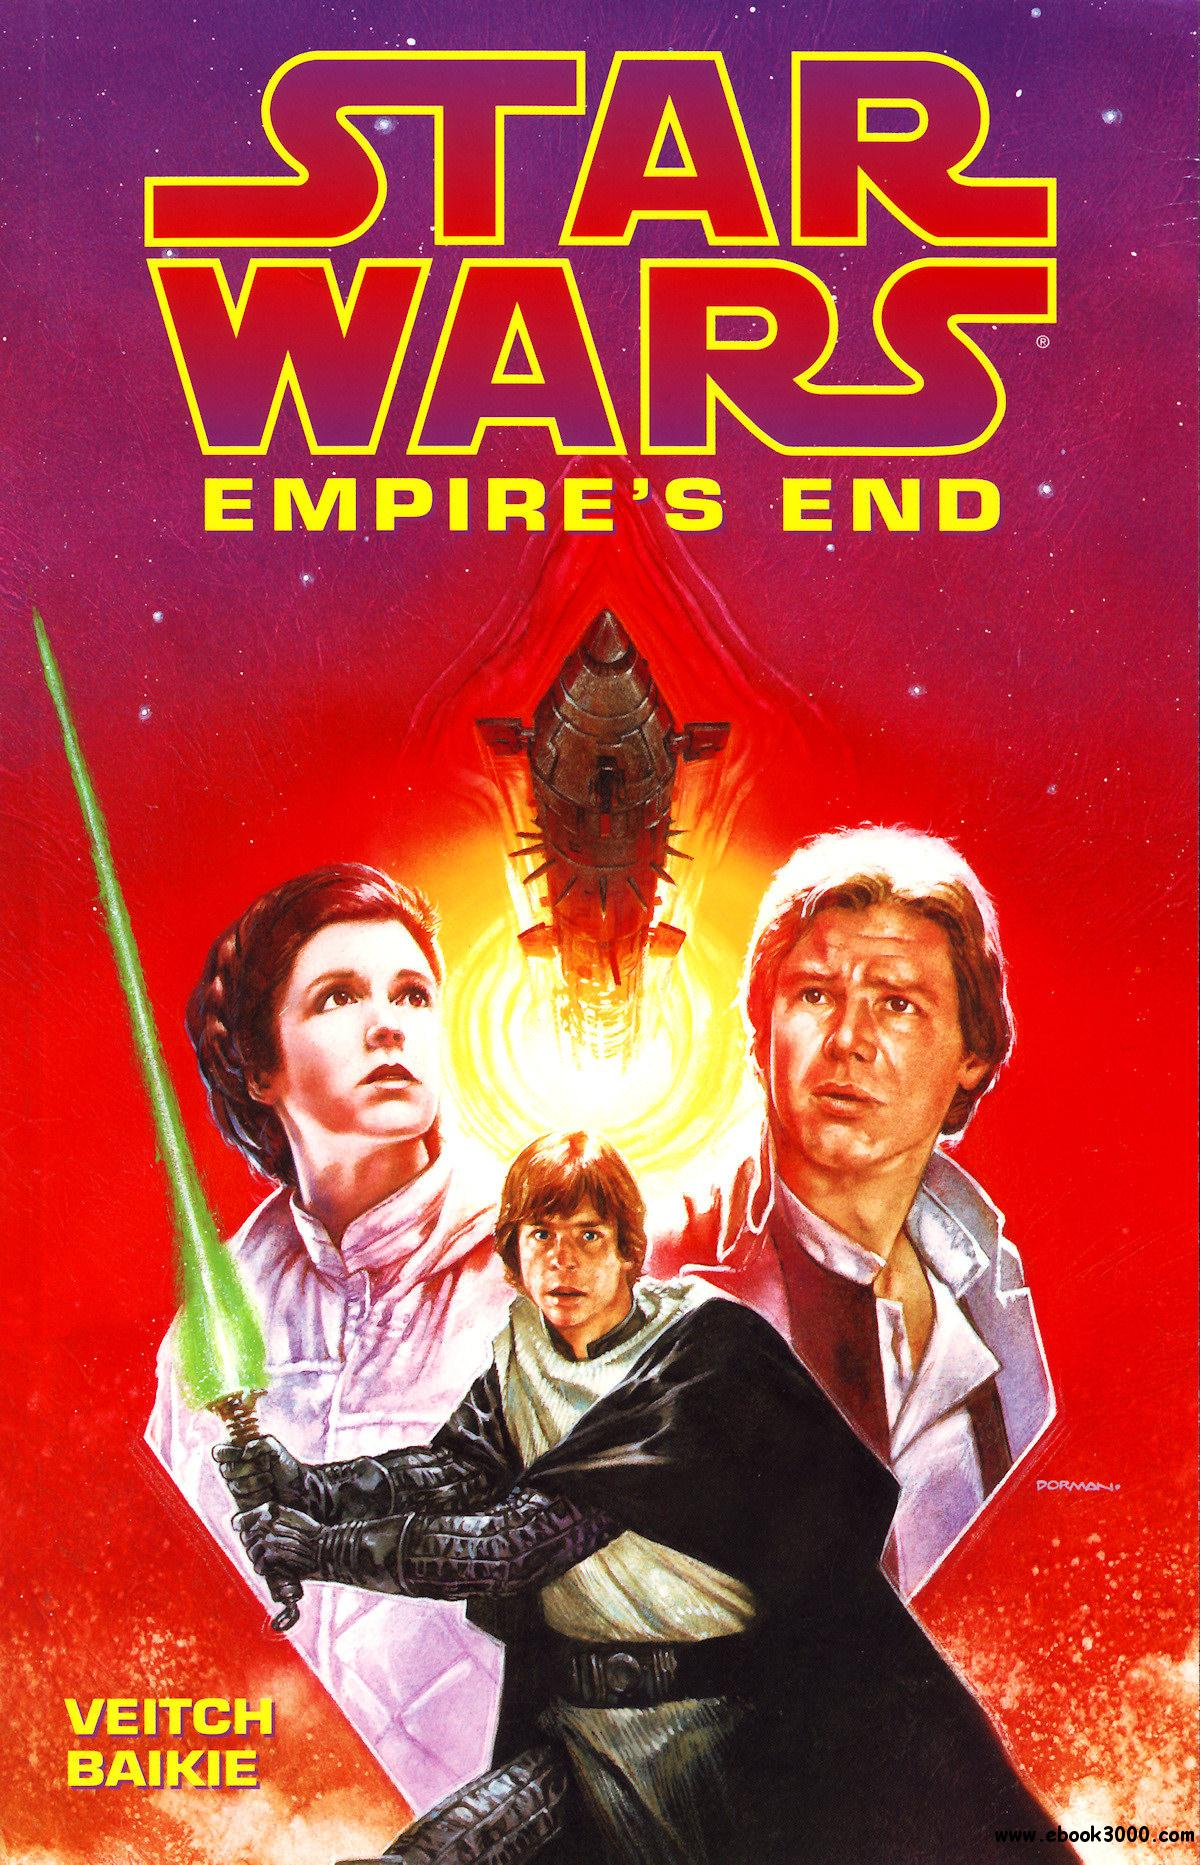 Star Wars - Empire's End [TPB] (1997) free download